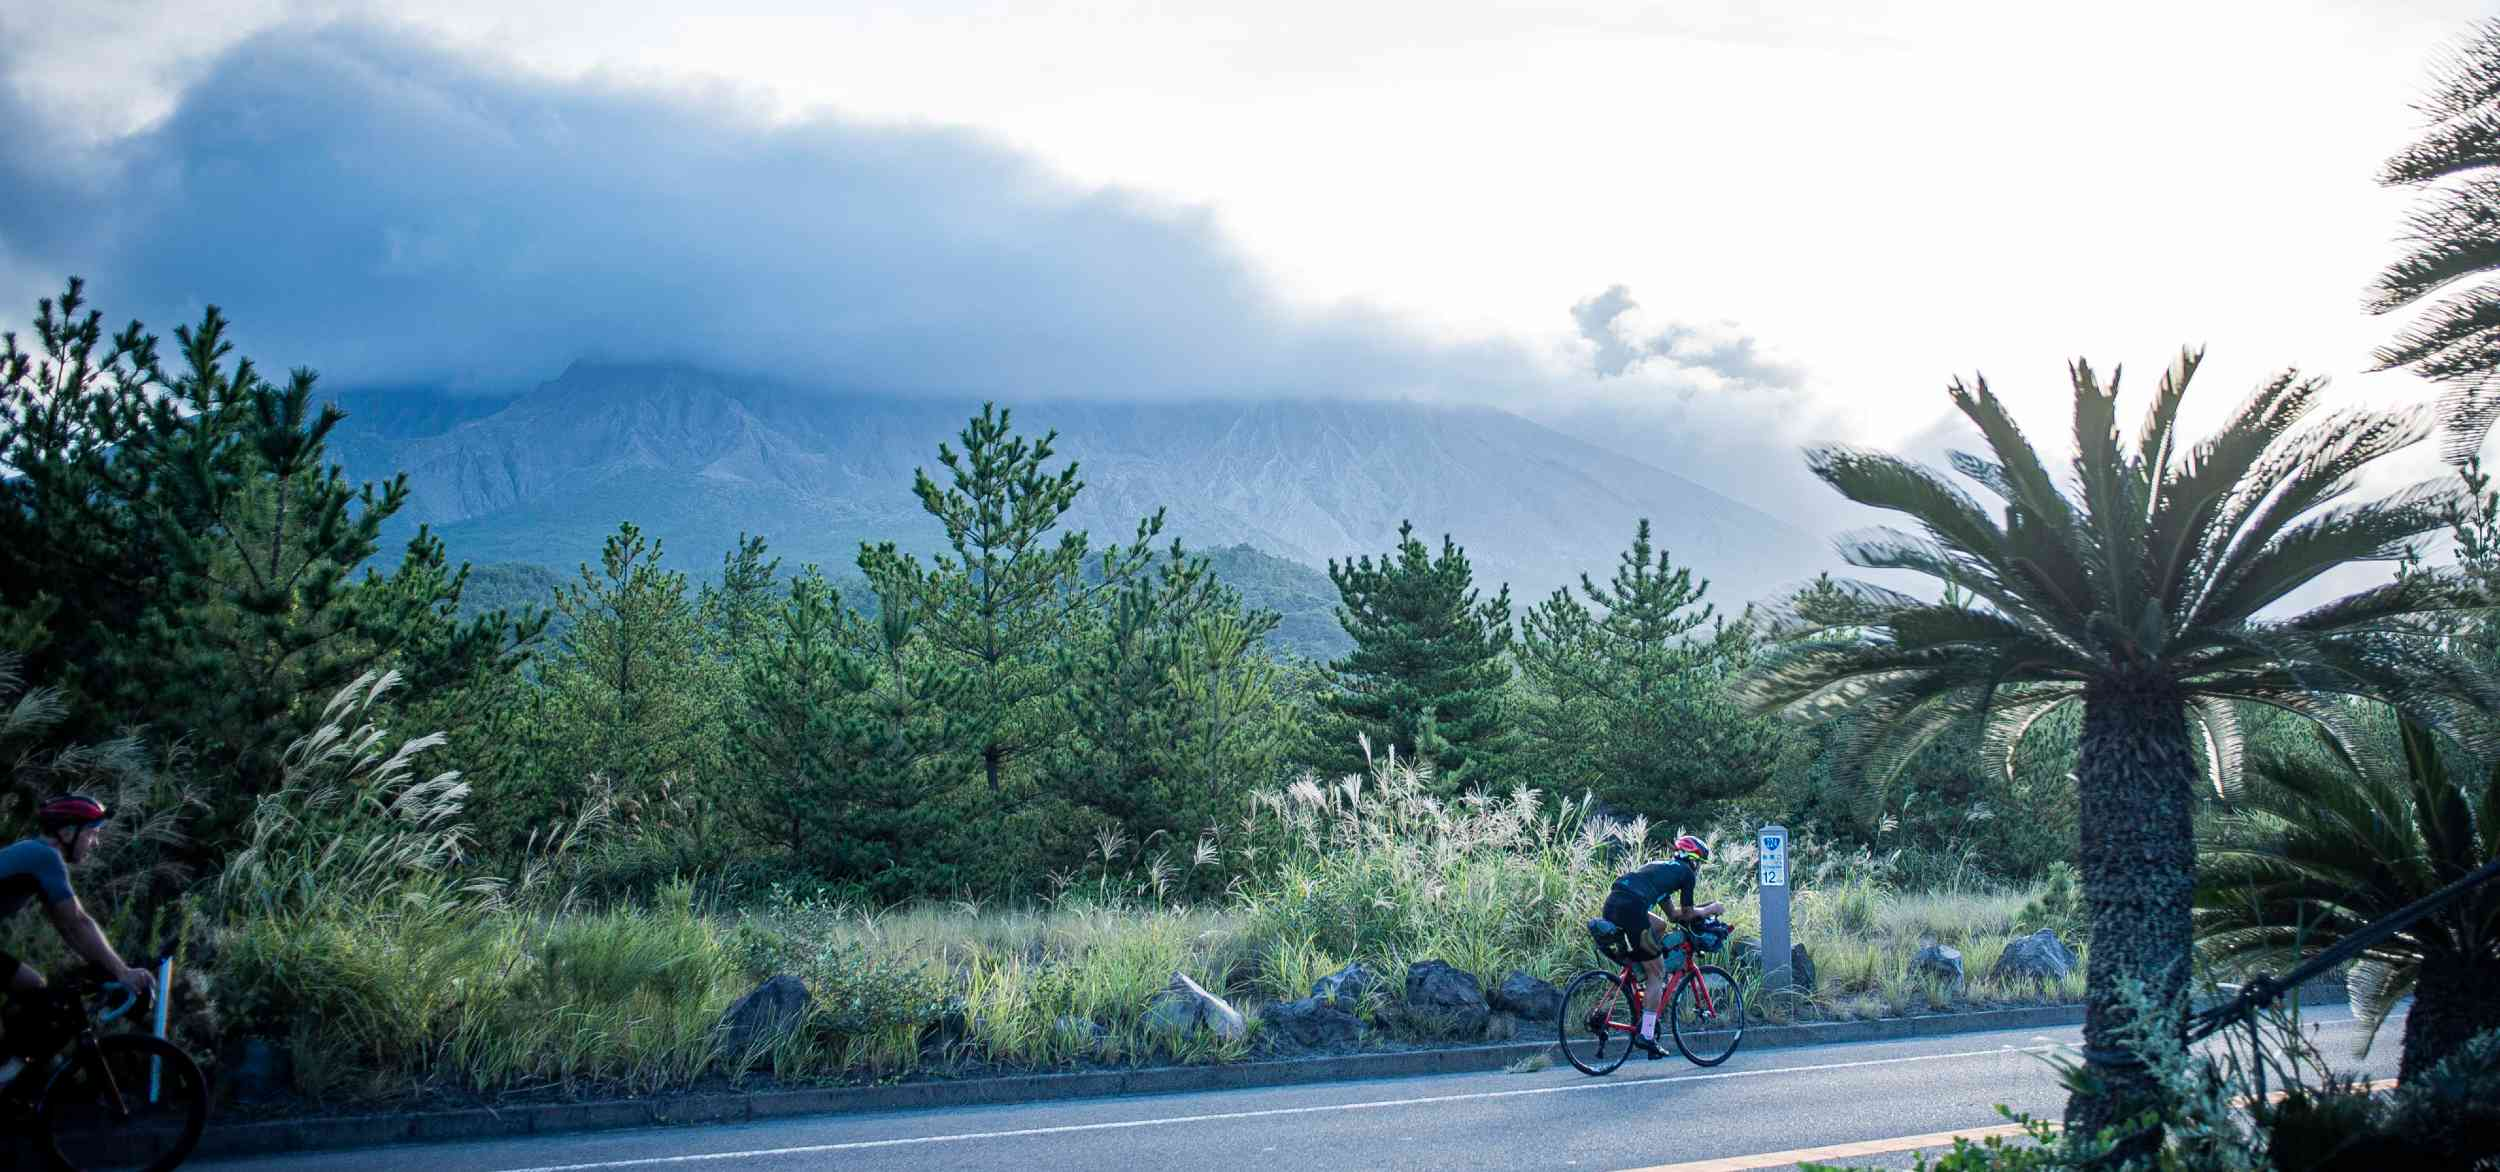 Two cyclists ride past trees and a looming sky